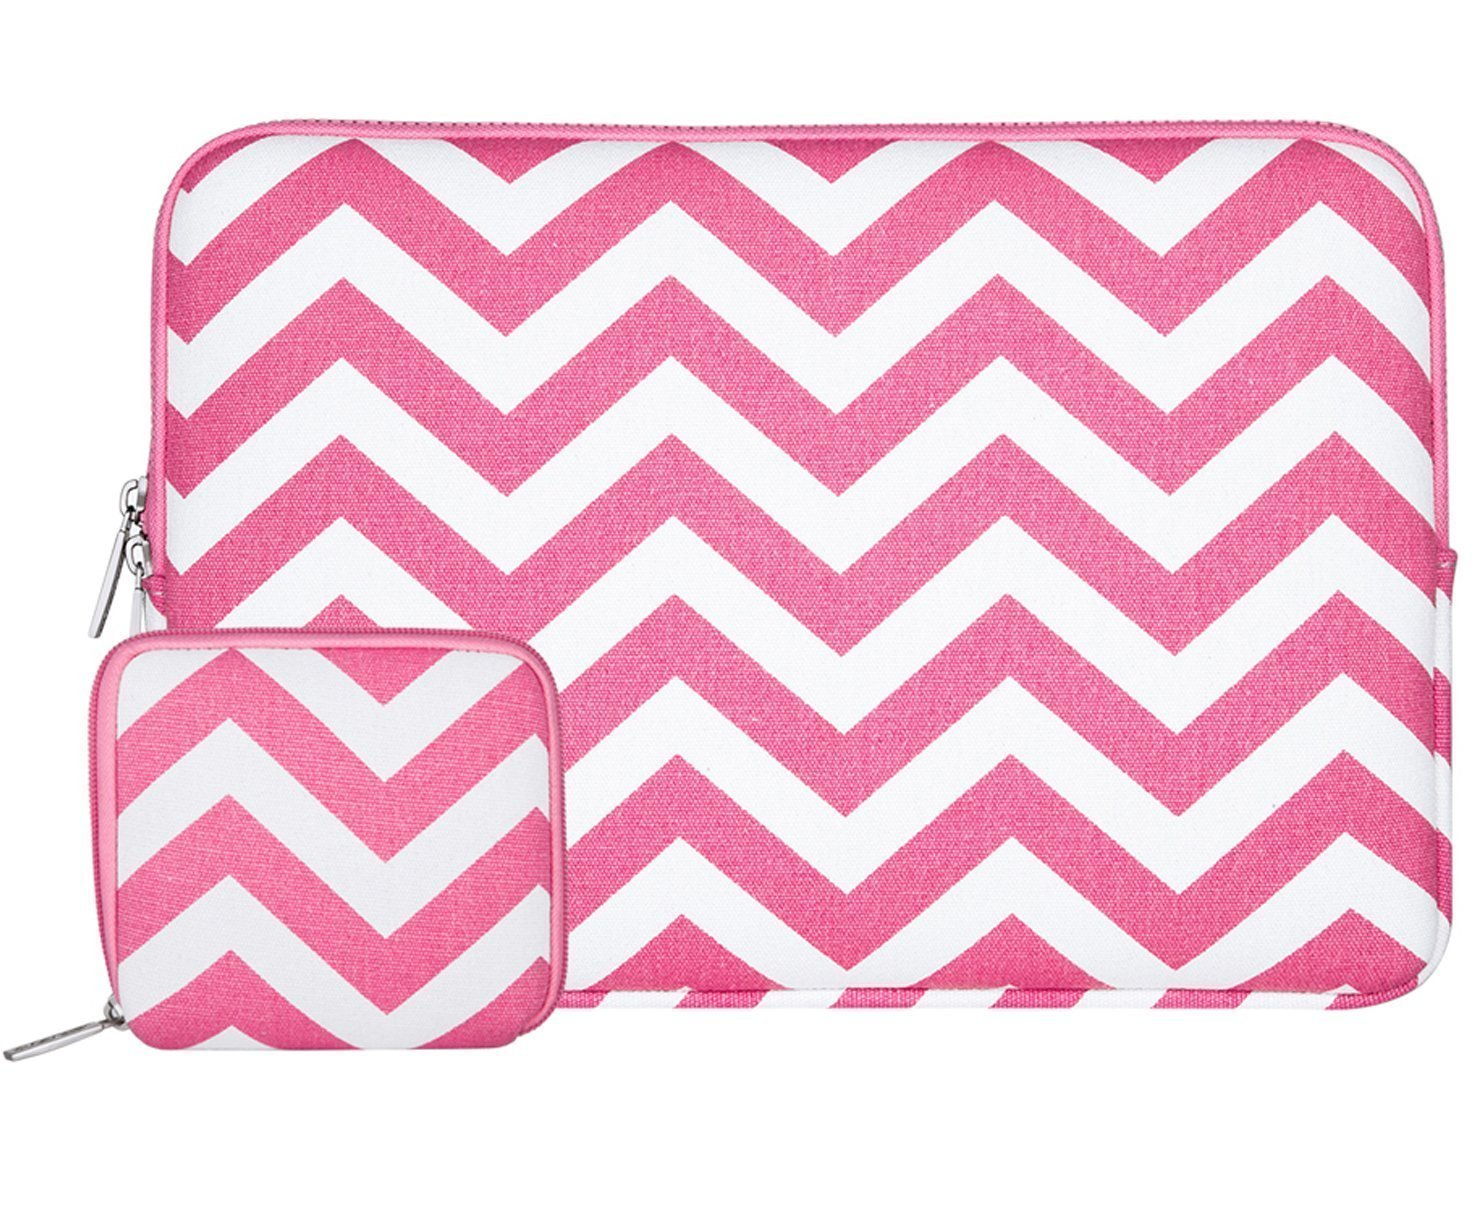 MOSISO Laptop Sleeve Bag Compatible 15-15.6 Inch MacBook Pro, Notebook Computer with Small Case, Chevron Style Canvas Fabric Protective Carrying Case Cover, Rose Red